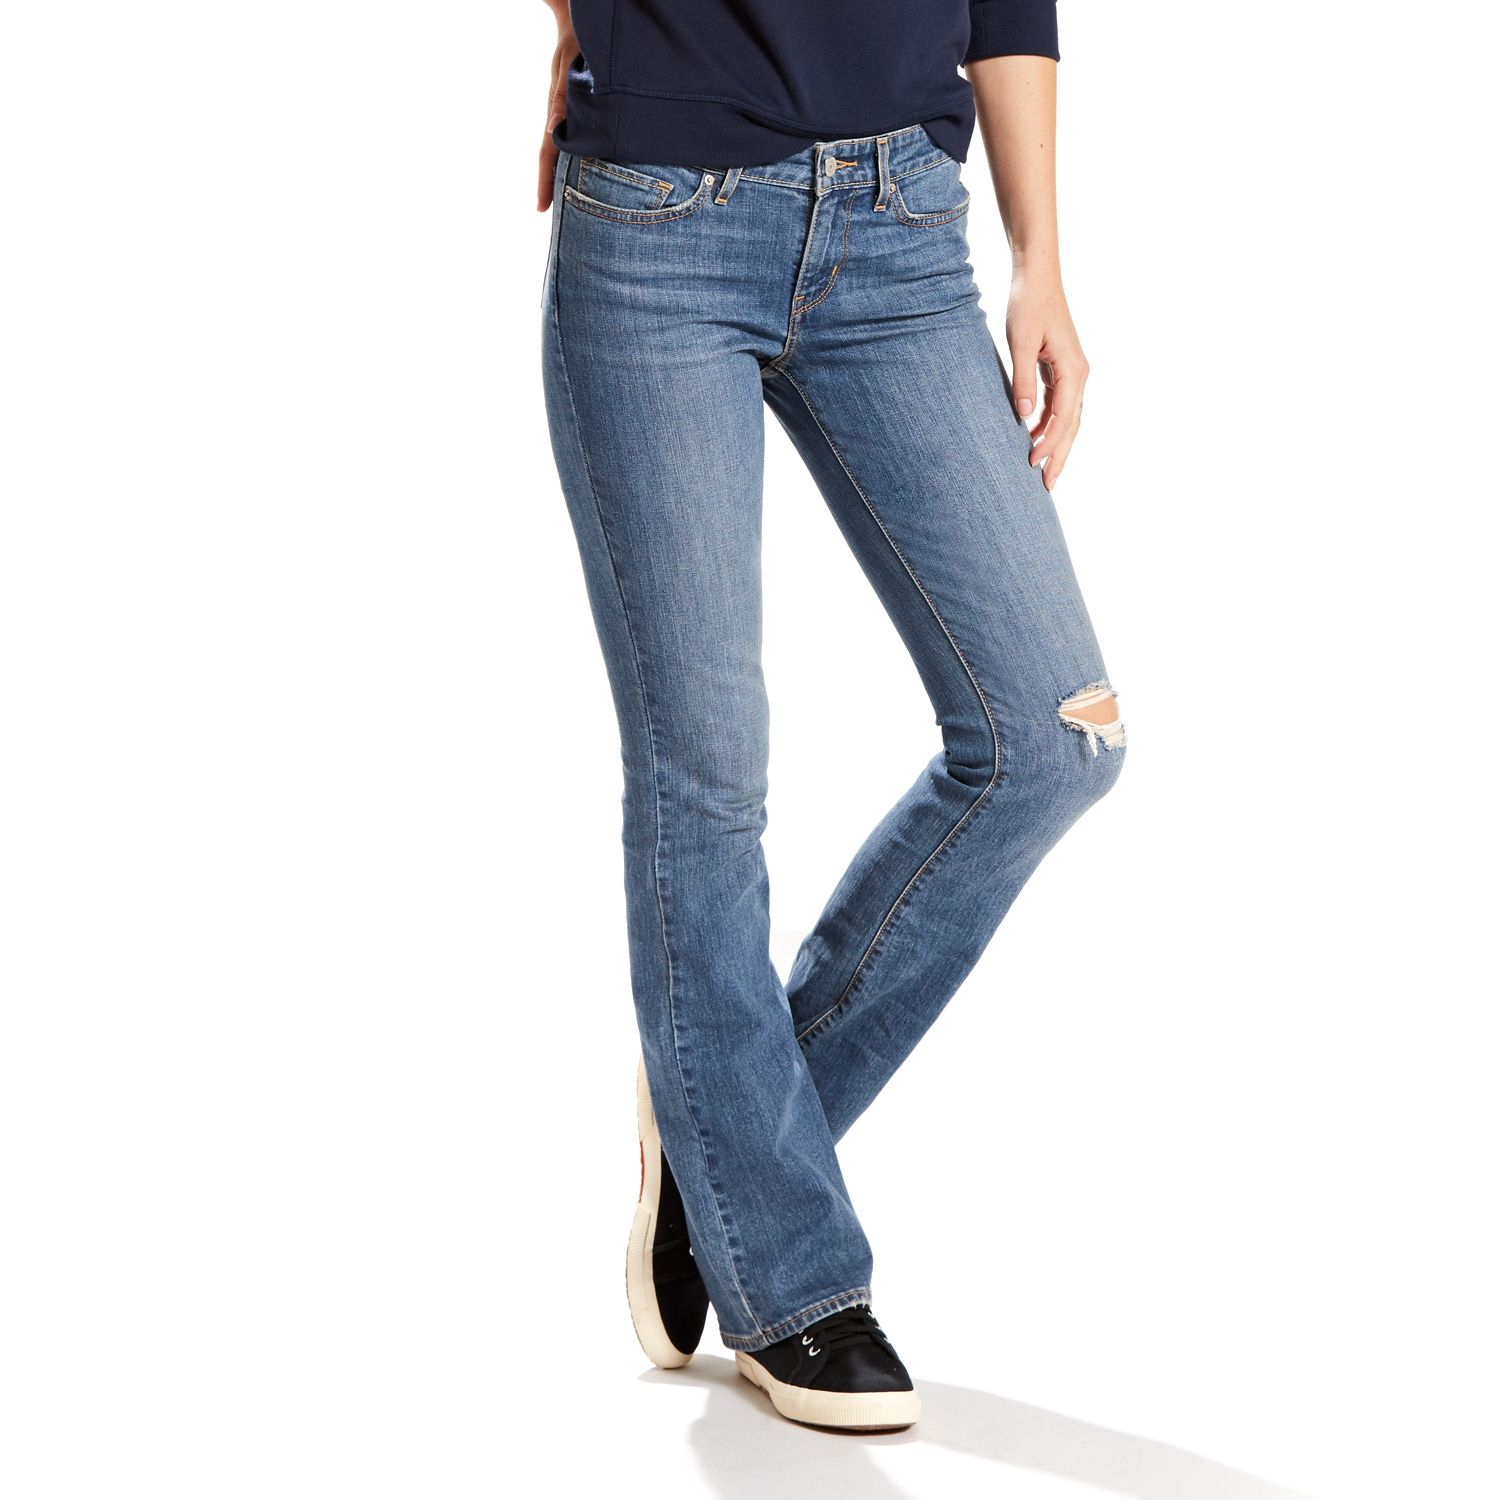 Levi's boot cut jeans womens